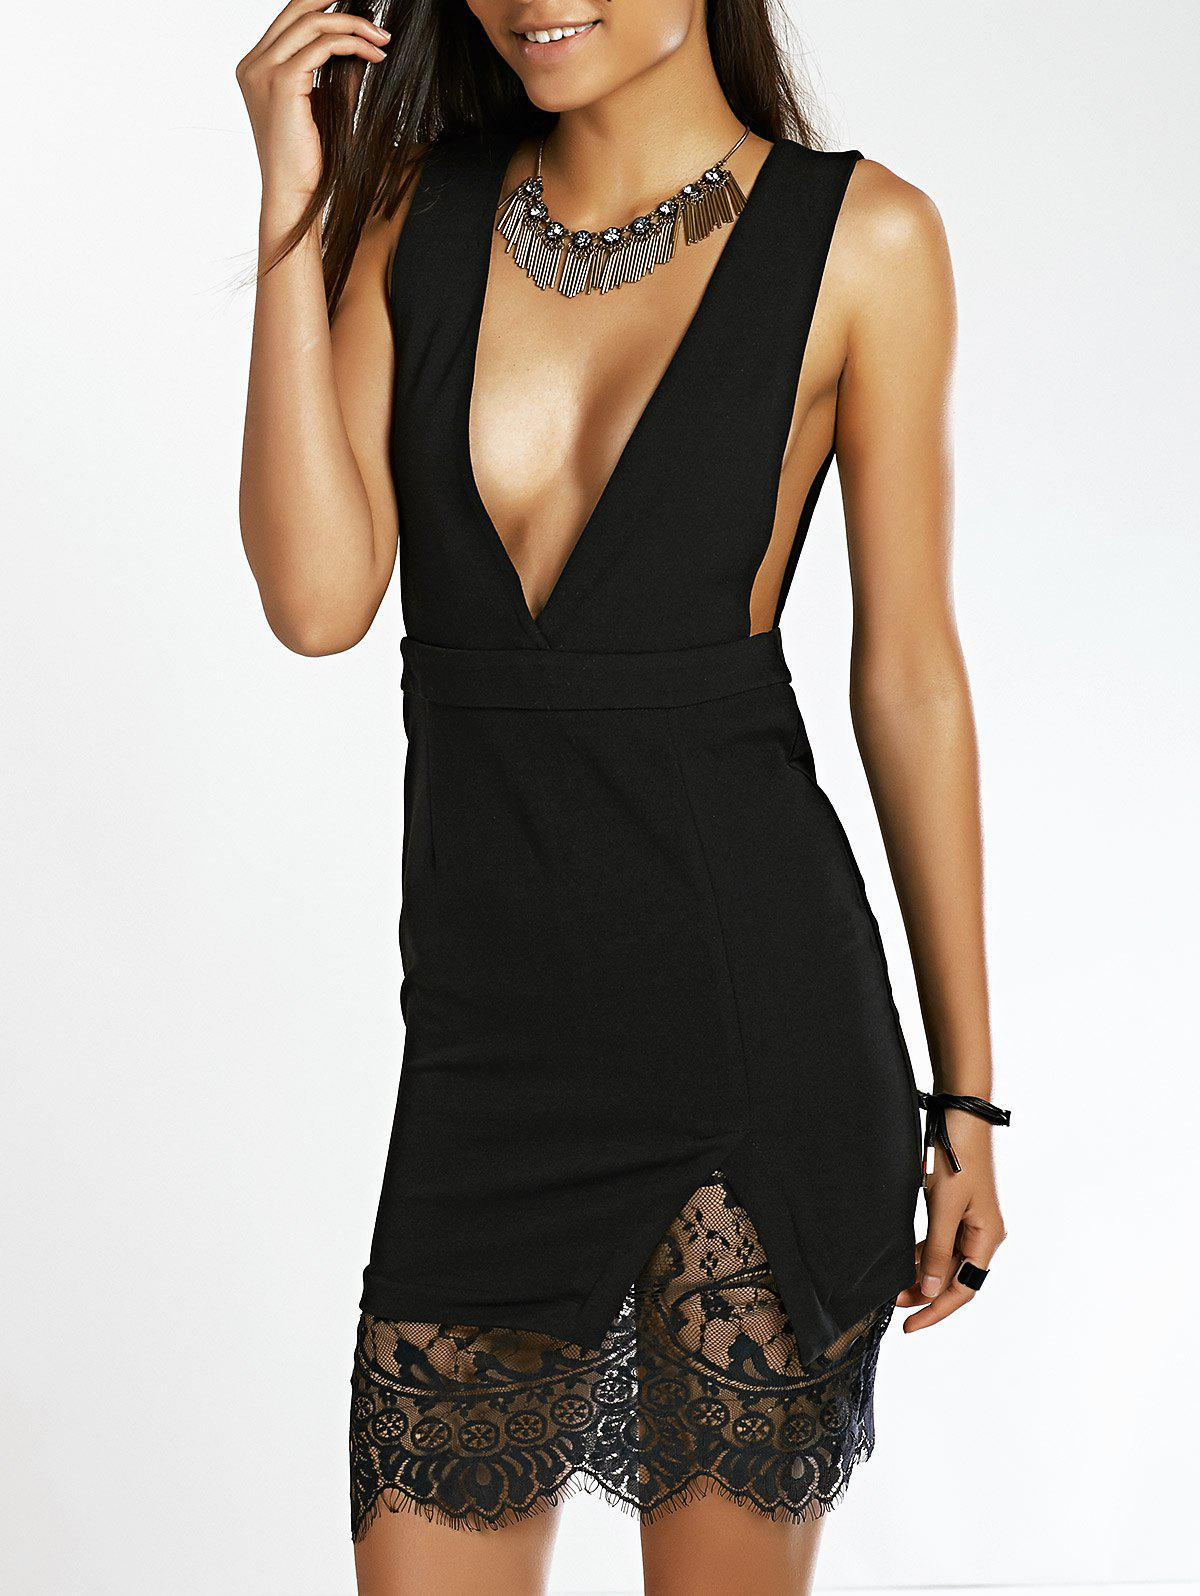 Stylish Women's Plunging Neck Lace Splicing Backless Dress - BLACK M